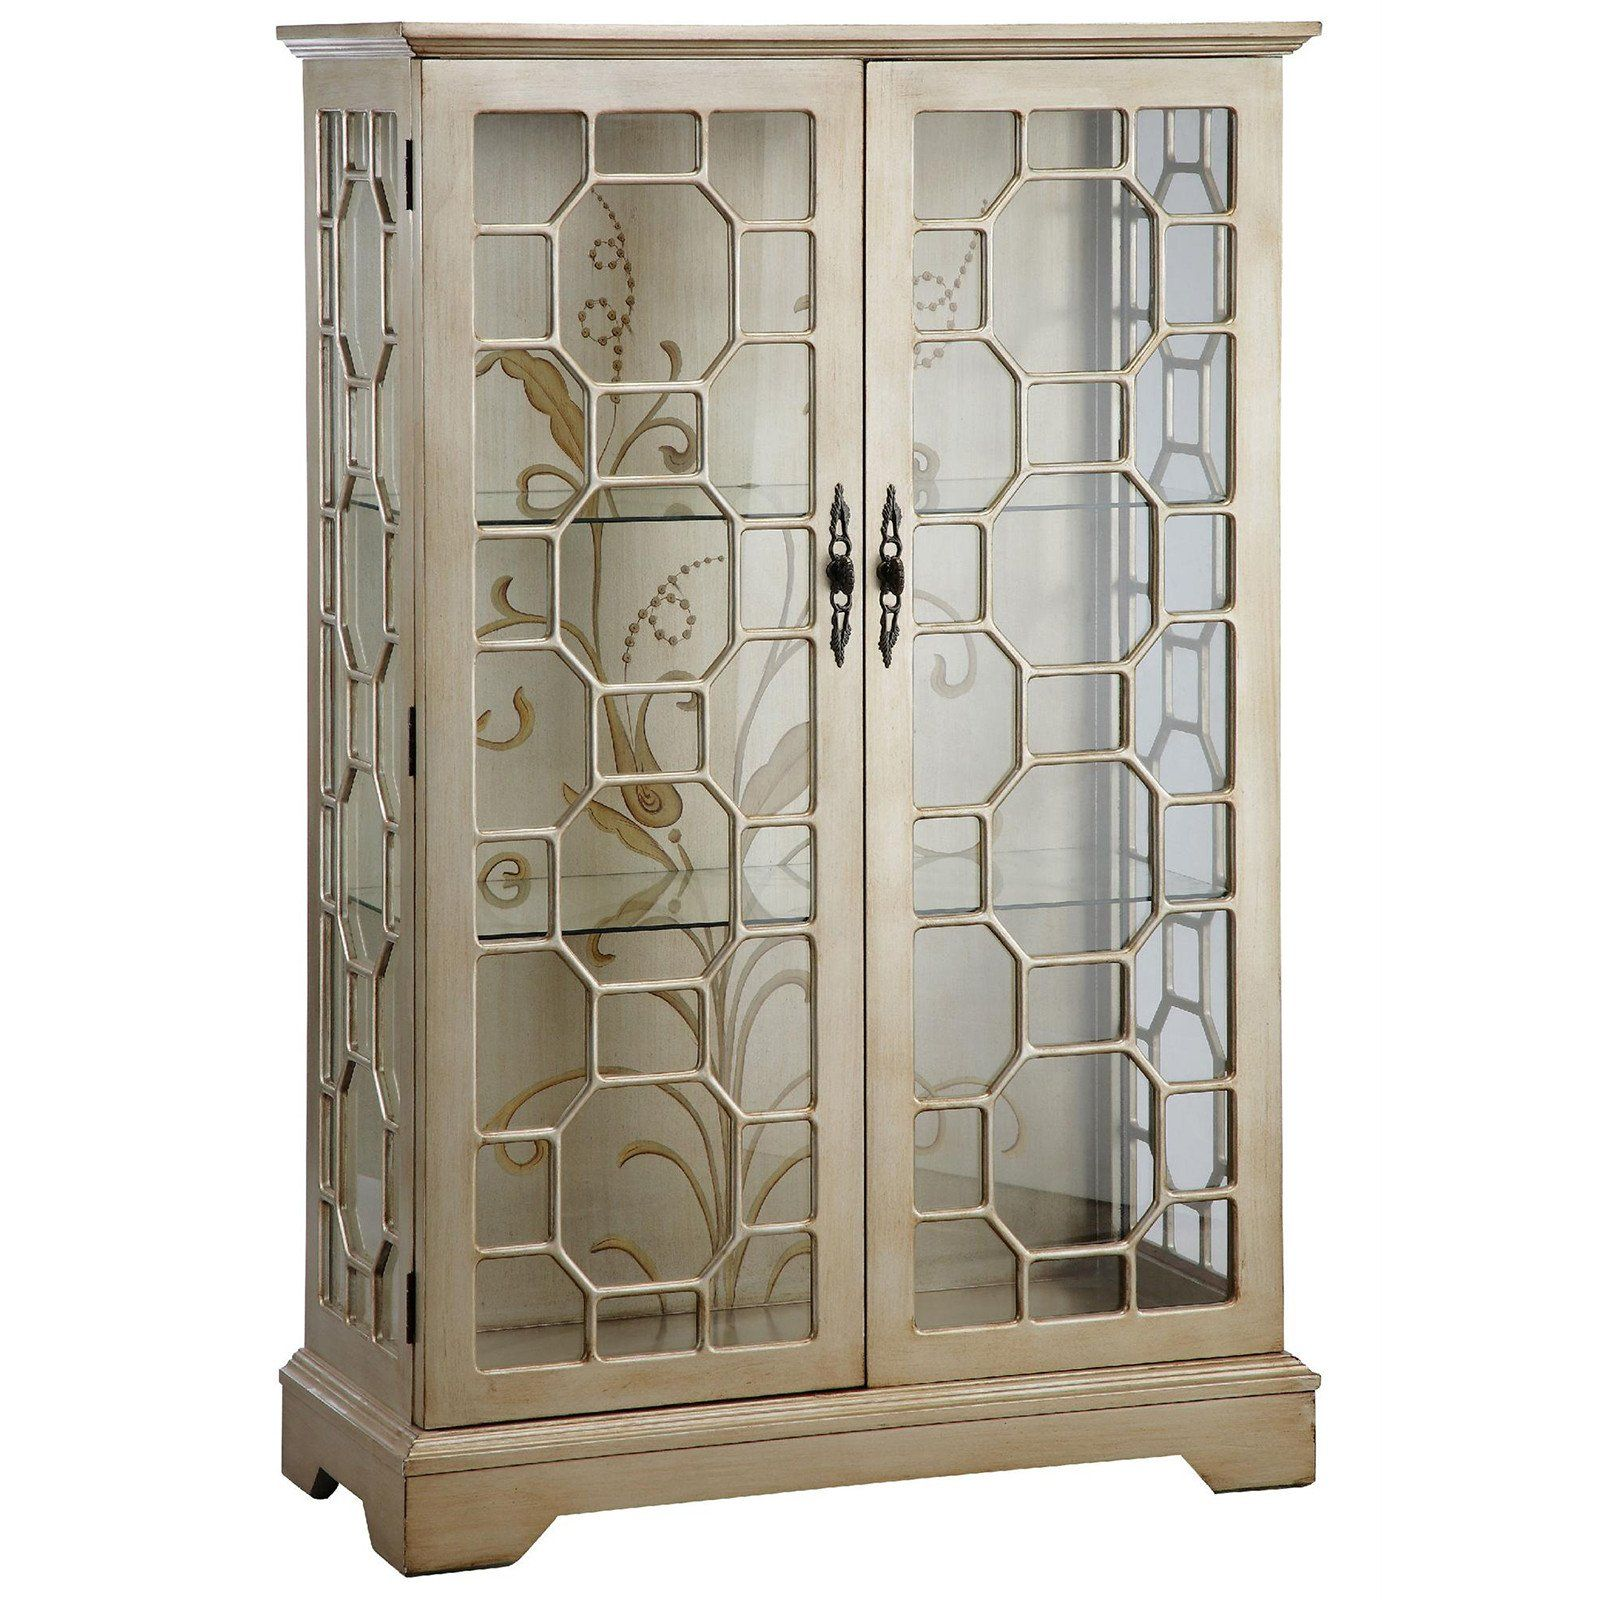 Diana 2 Door Display Cabinet In Silver And Gold Curio Cabinet Stein World Display Cabinet